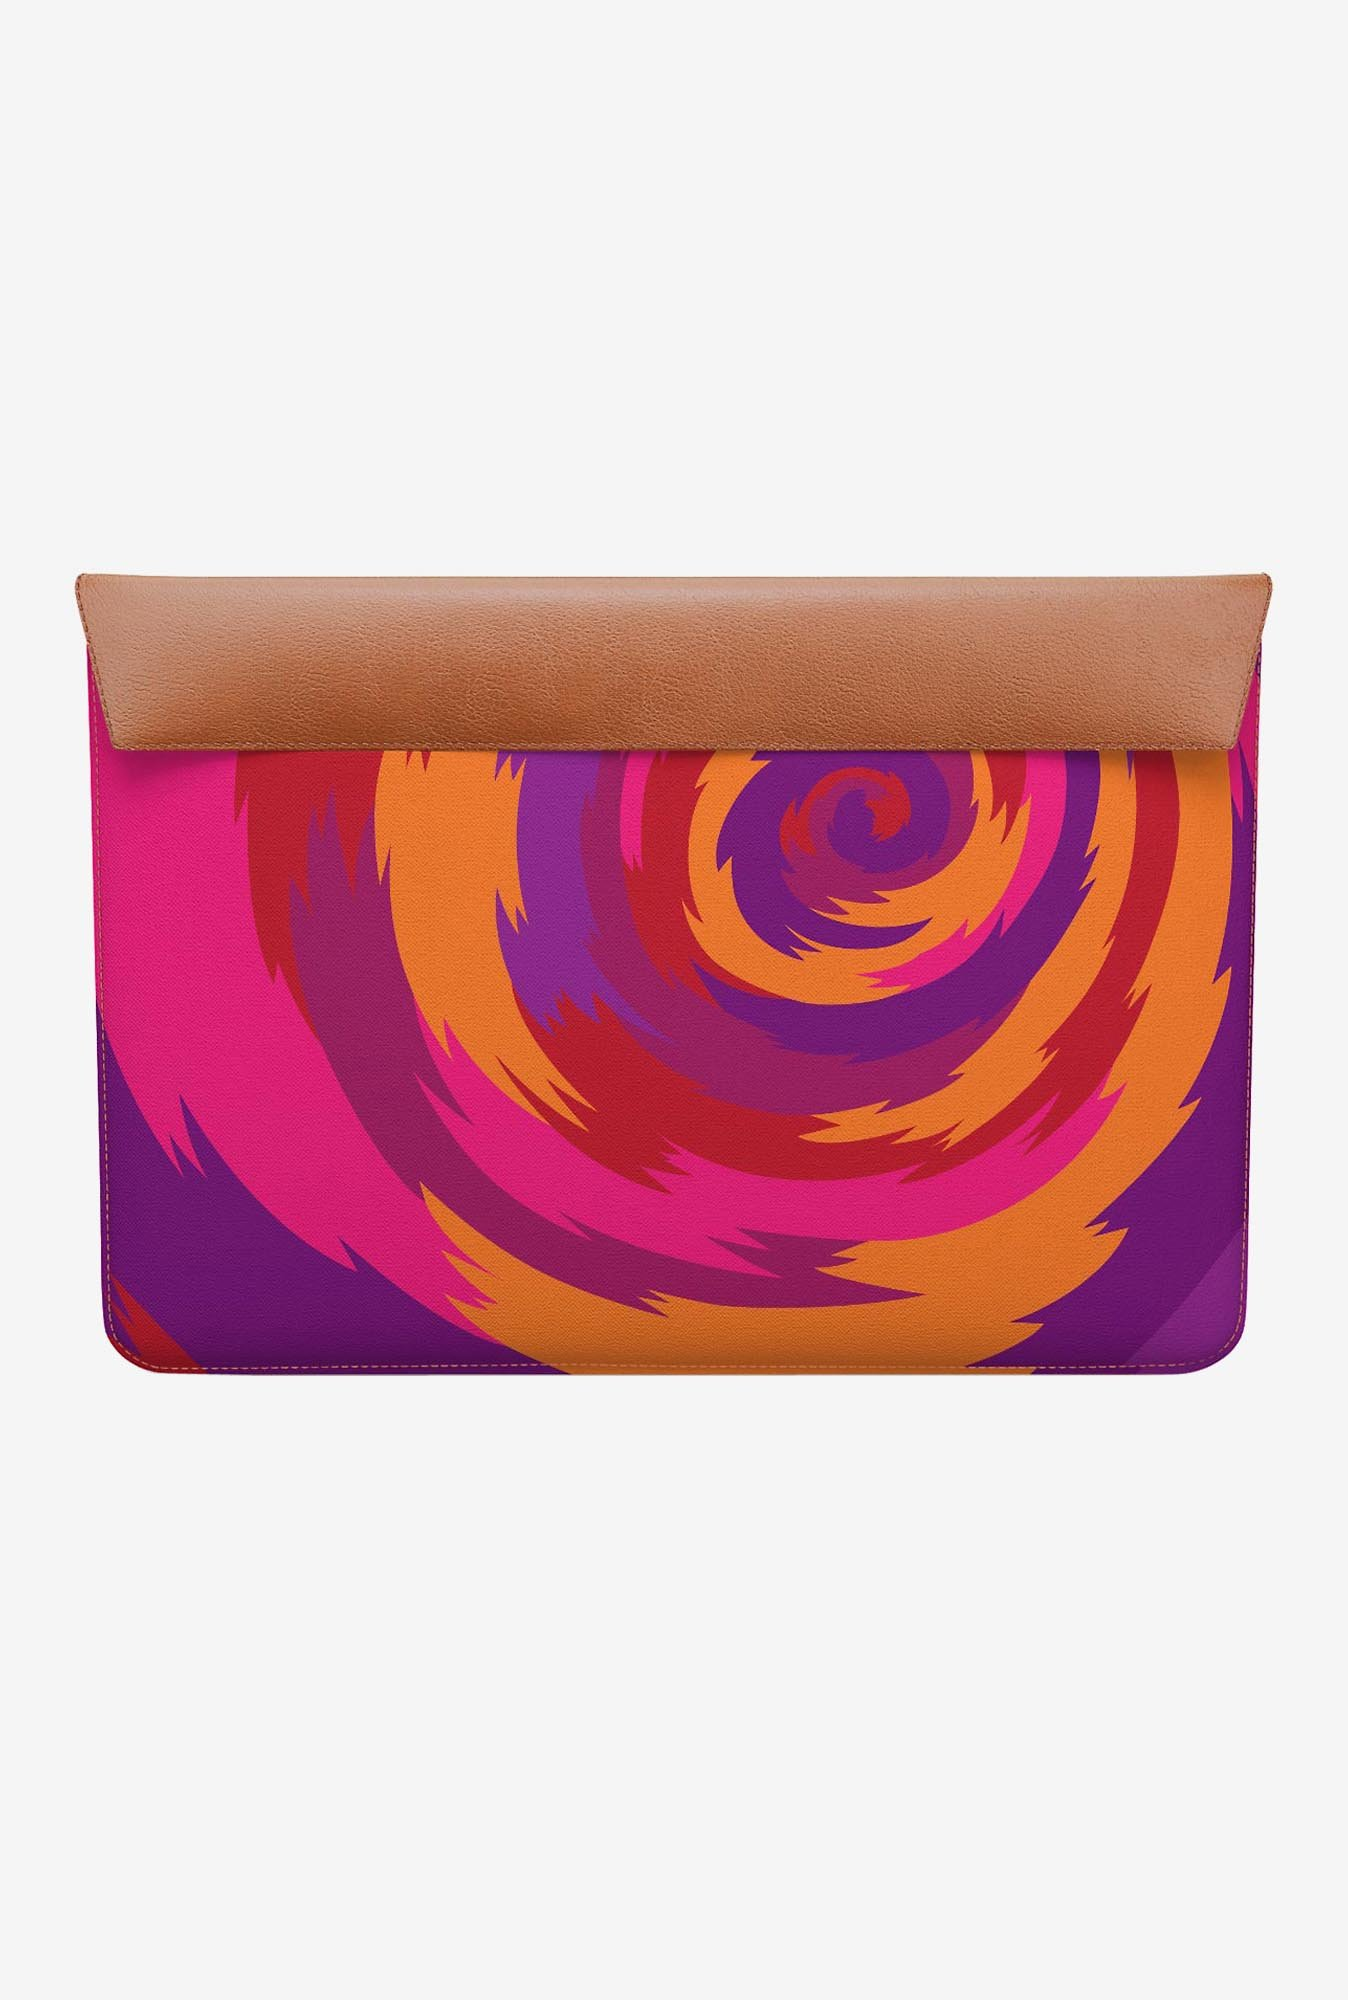 DailyObjects Purple Swirl MacBook 12 Envelope Sleeve